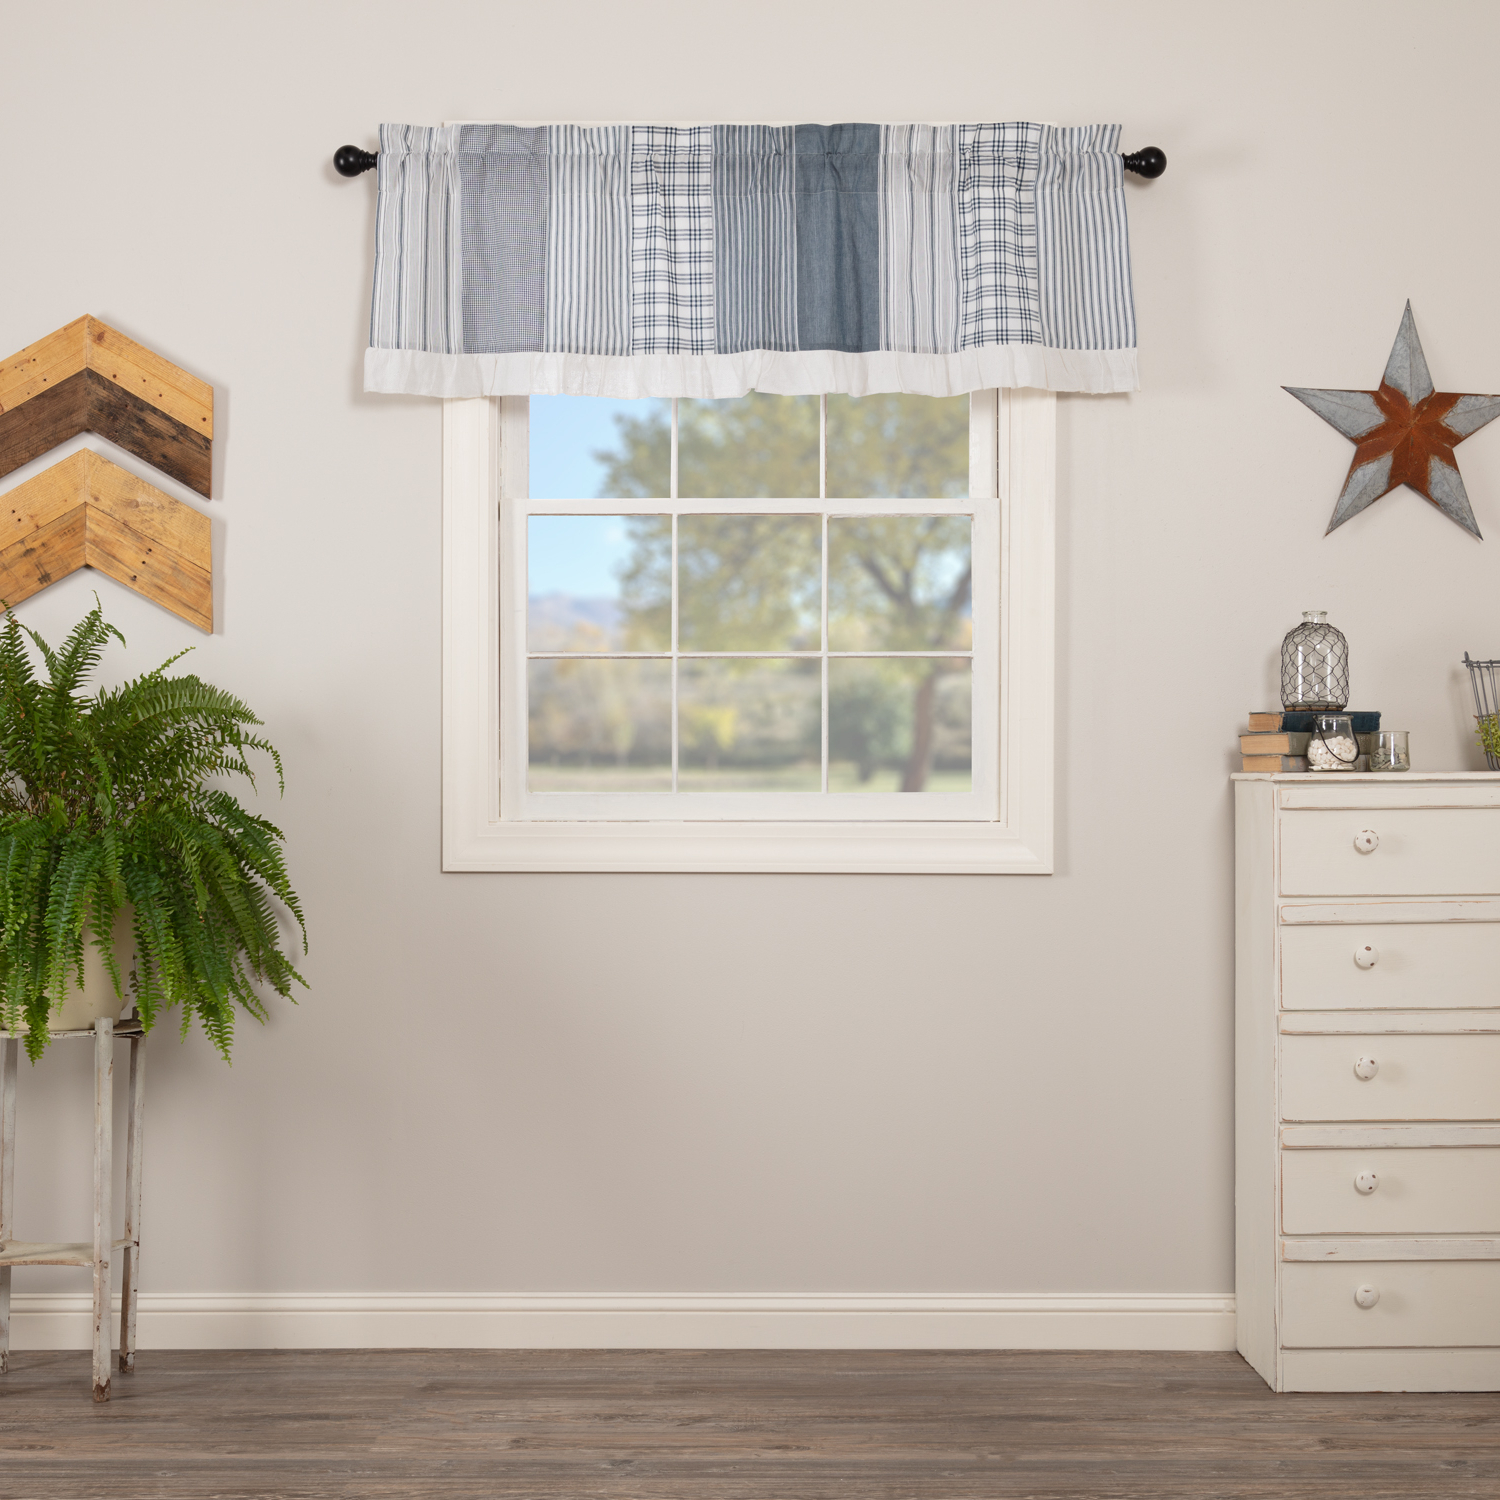 Newest Denim Blue Farmhouse Kitchen Curtains Miller Farm Charcoal Patchwork Rod  Pocket Cotton Hanging Loops Chambray 19X60 Valance Throughout Farmhouse Kitchen Curtains (View 15 of 20)